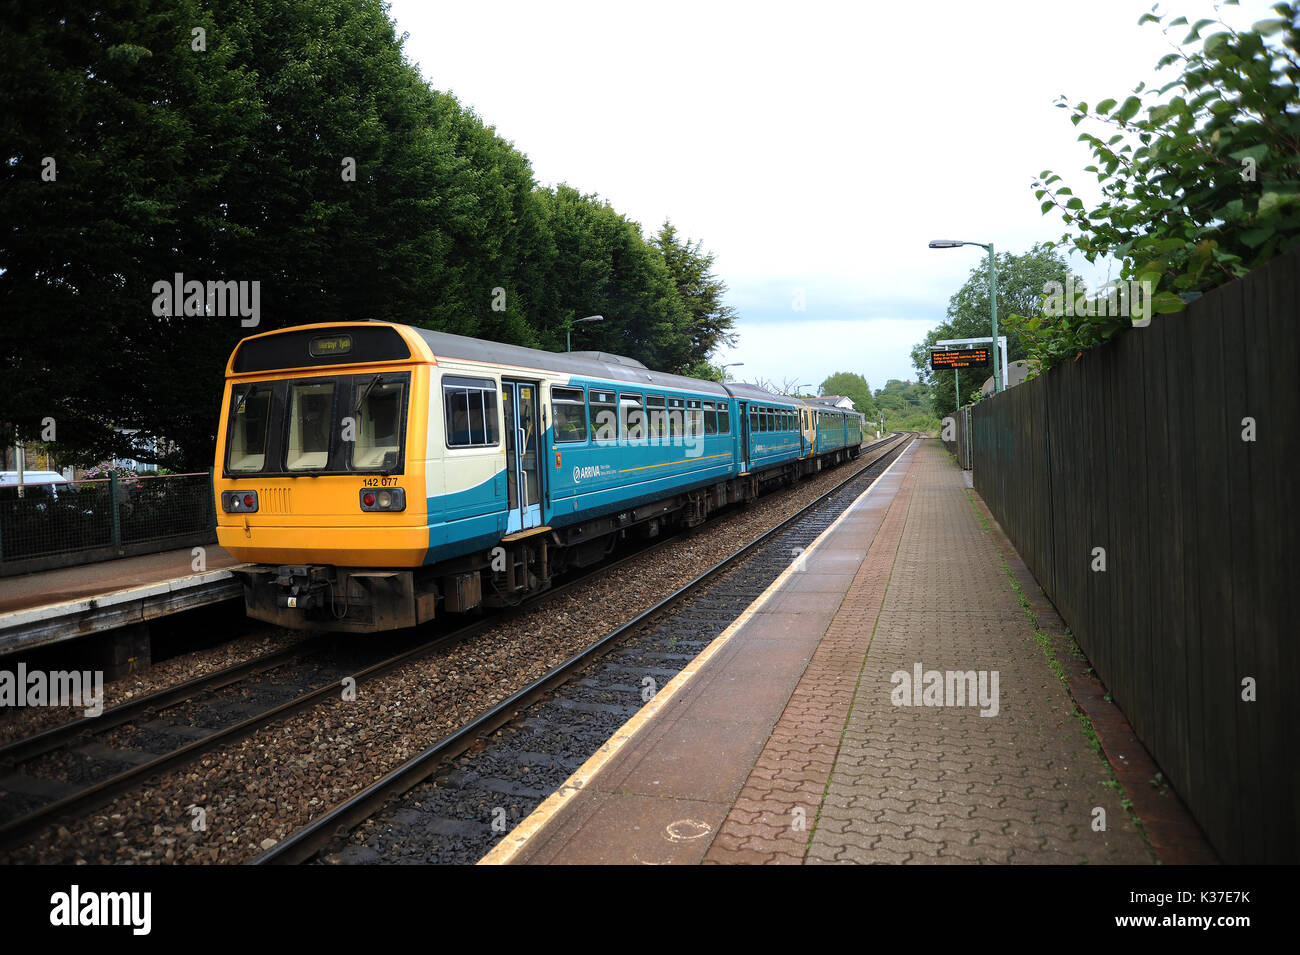 Nearest Service Station >> 142077 Nearest Camera And 143625 At Eastbrook Station With